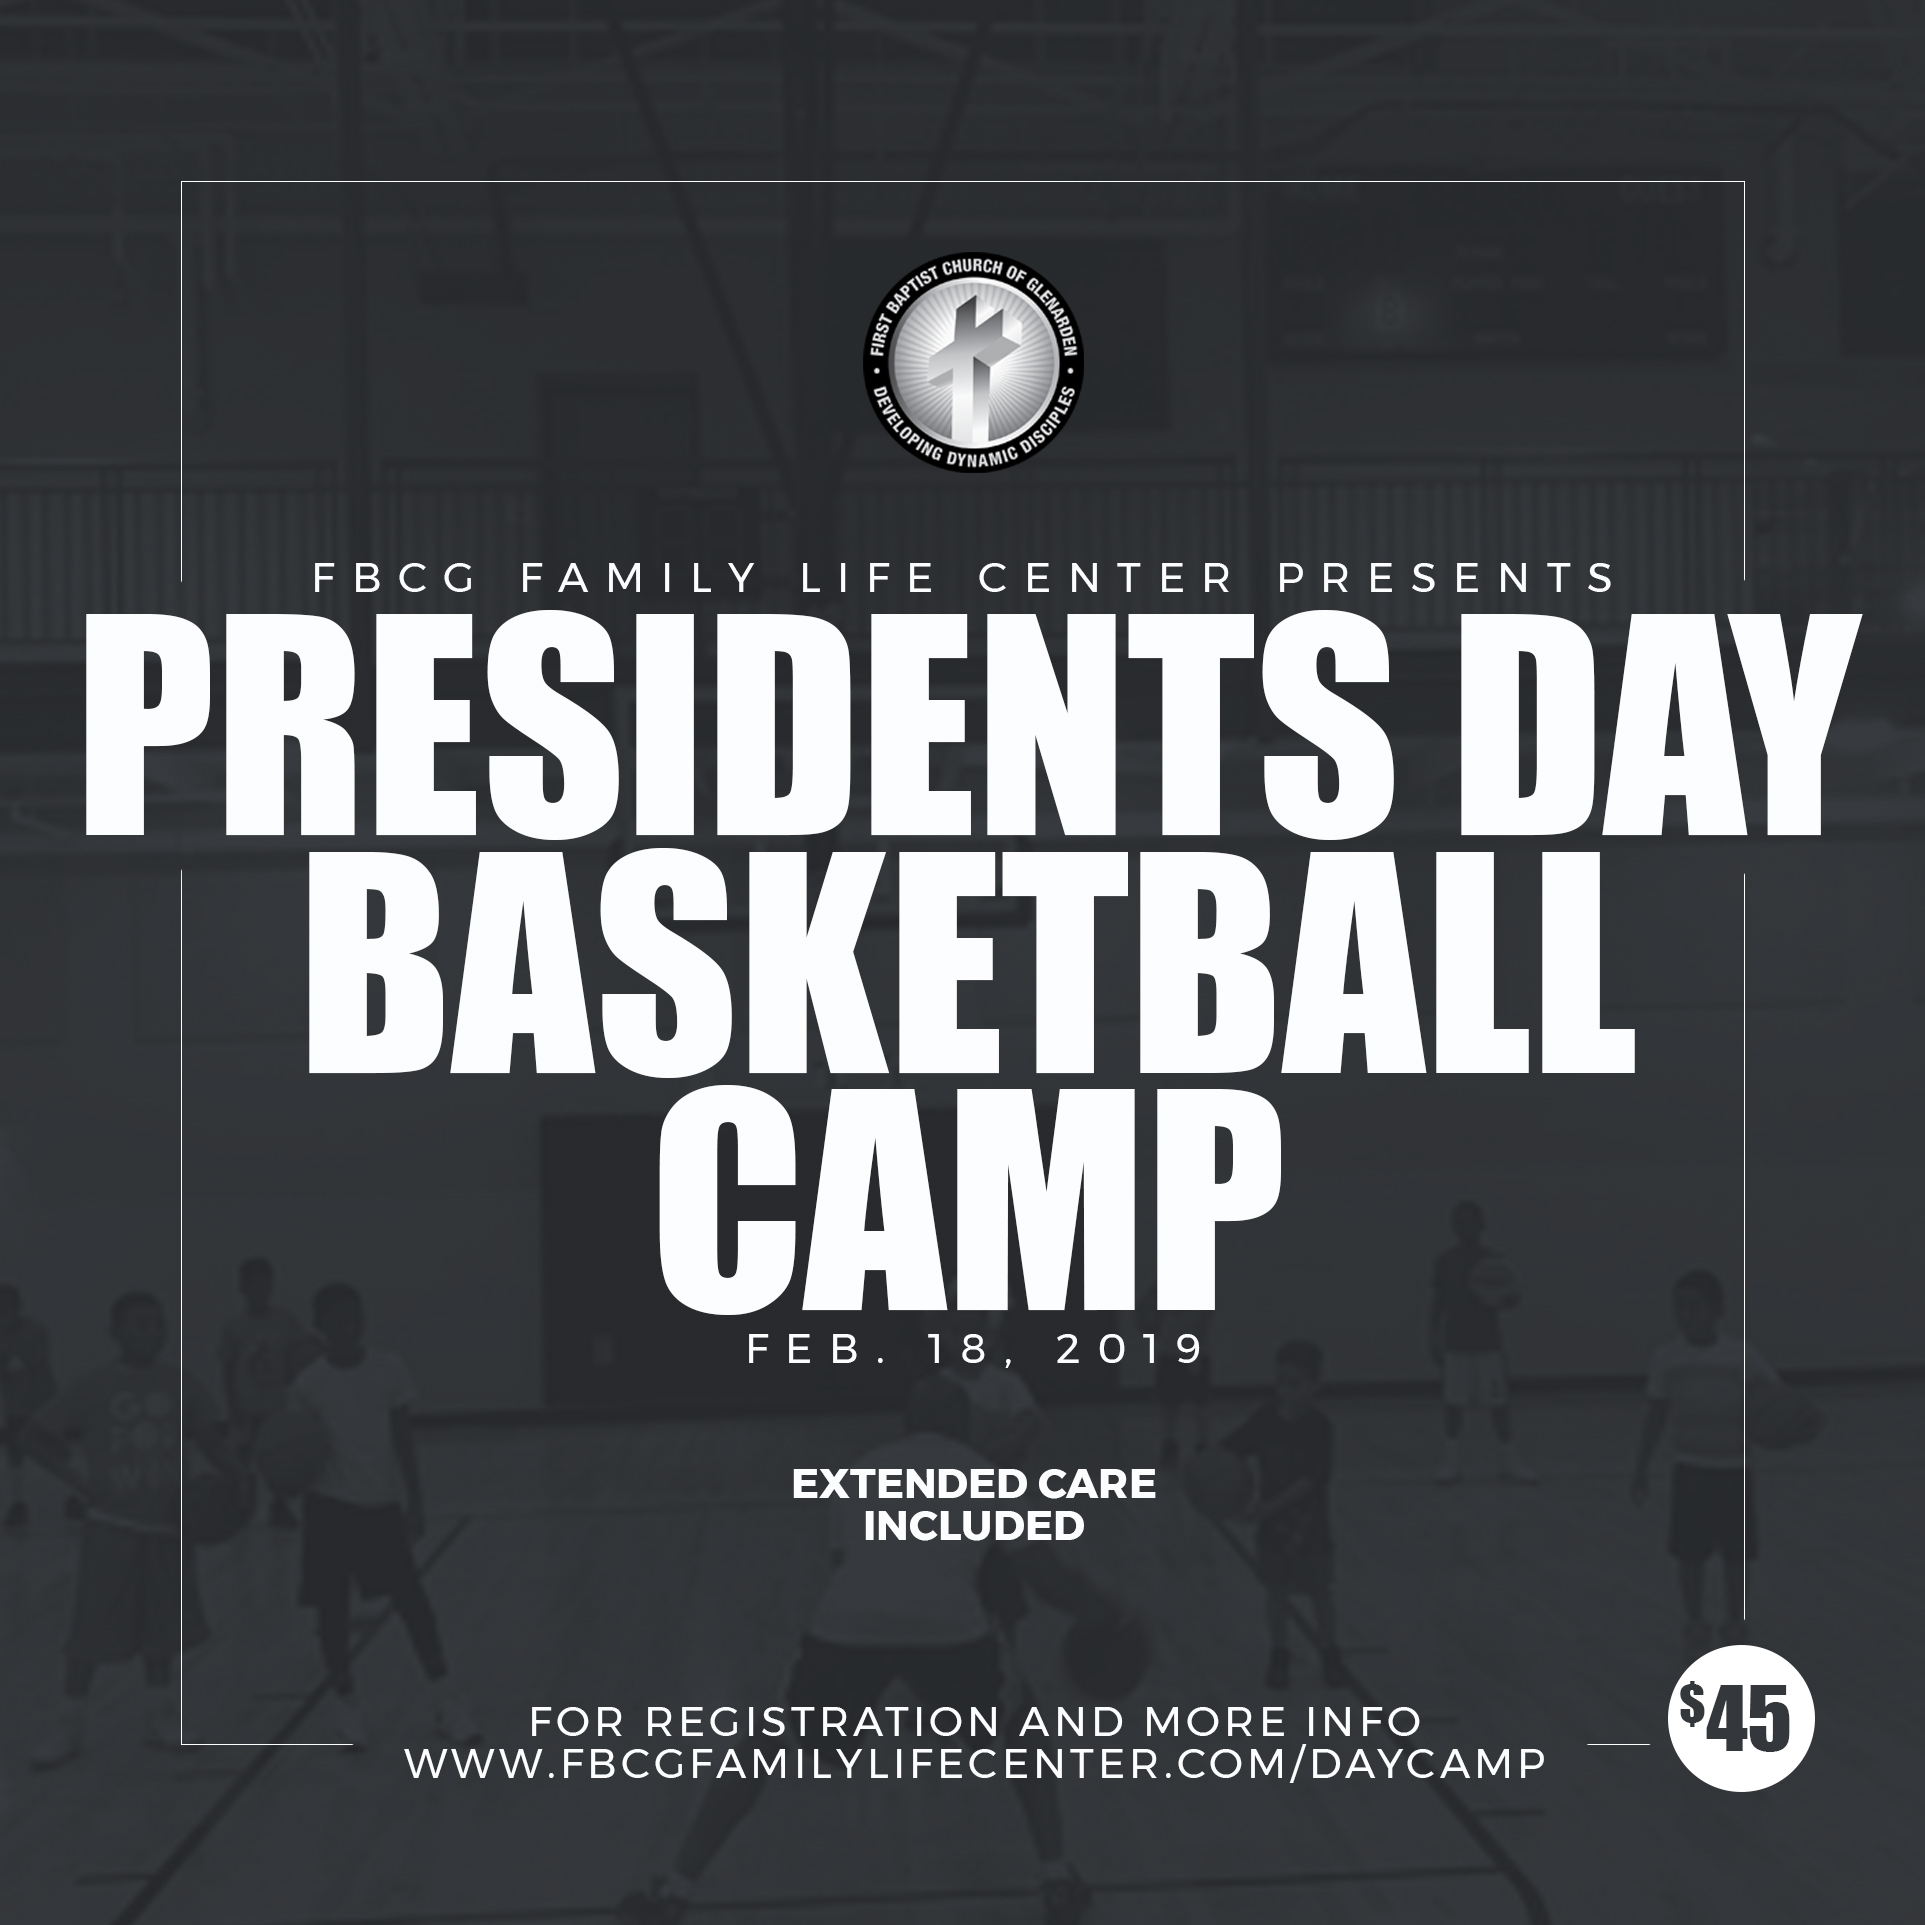 The FBCG Family Life Center will host a basketball camp on February 18th for boys & girls ages 6-13. The camp will focus on individual skill development, competition and devotion time. The high level skilled staff will be intentional about keeping the sessions positive, active & fun! Space is limited and campers will be accepted on a first come first serve basis.   CAMP HOURS:  9 A.M. - 4 P.M.   EXTENDED CARE (INCLUDED):  8 A.M. - 6 P.M.   CAMPERS MUST BRING THEIR OWN LUNCH    COST:  $45